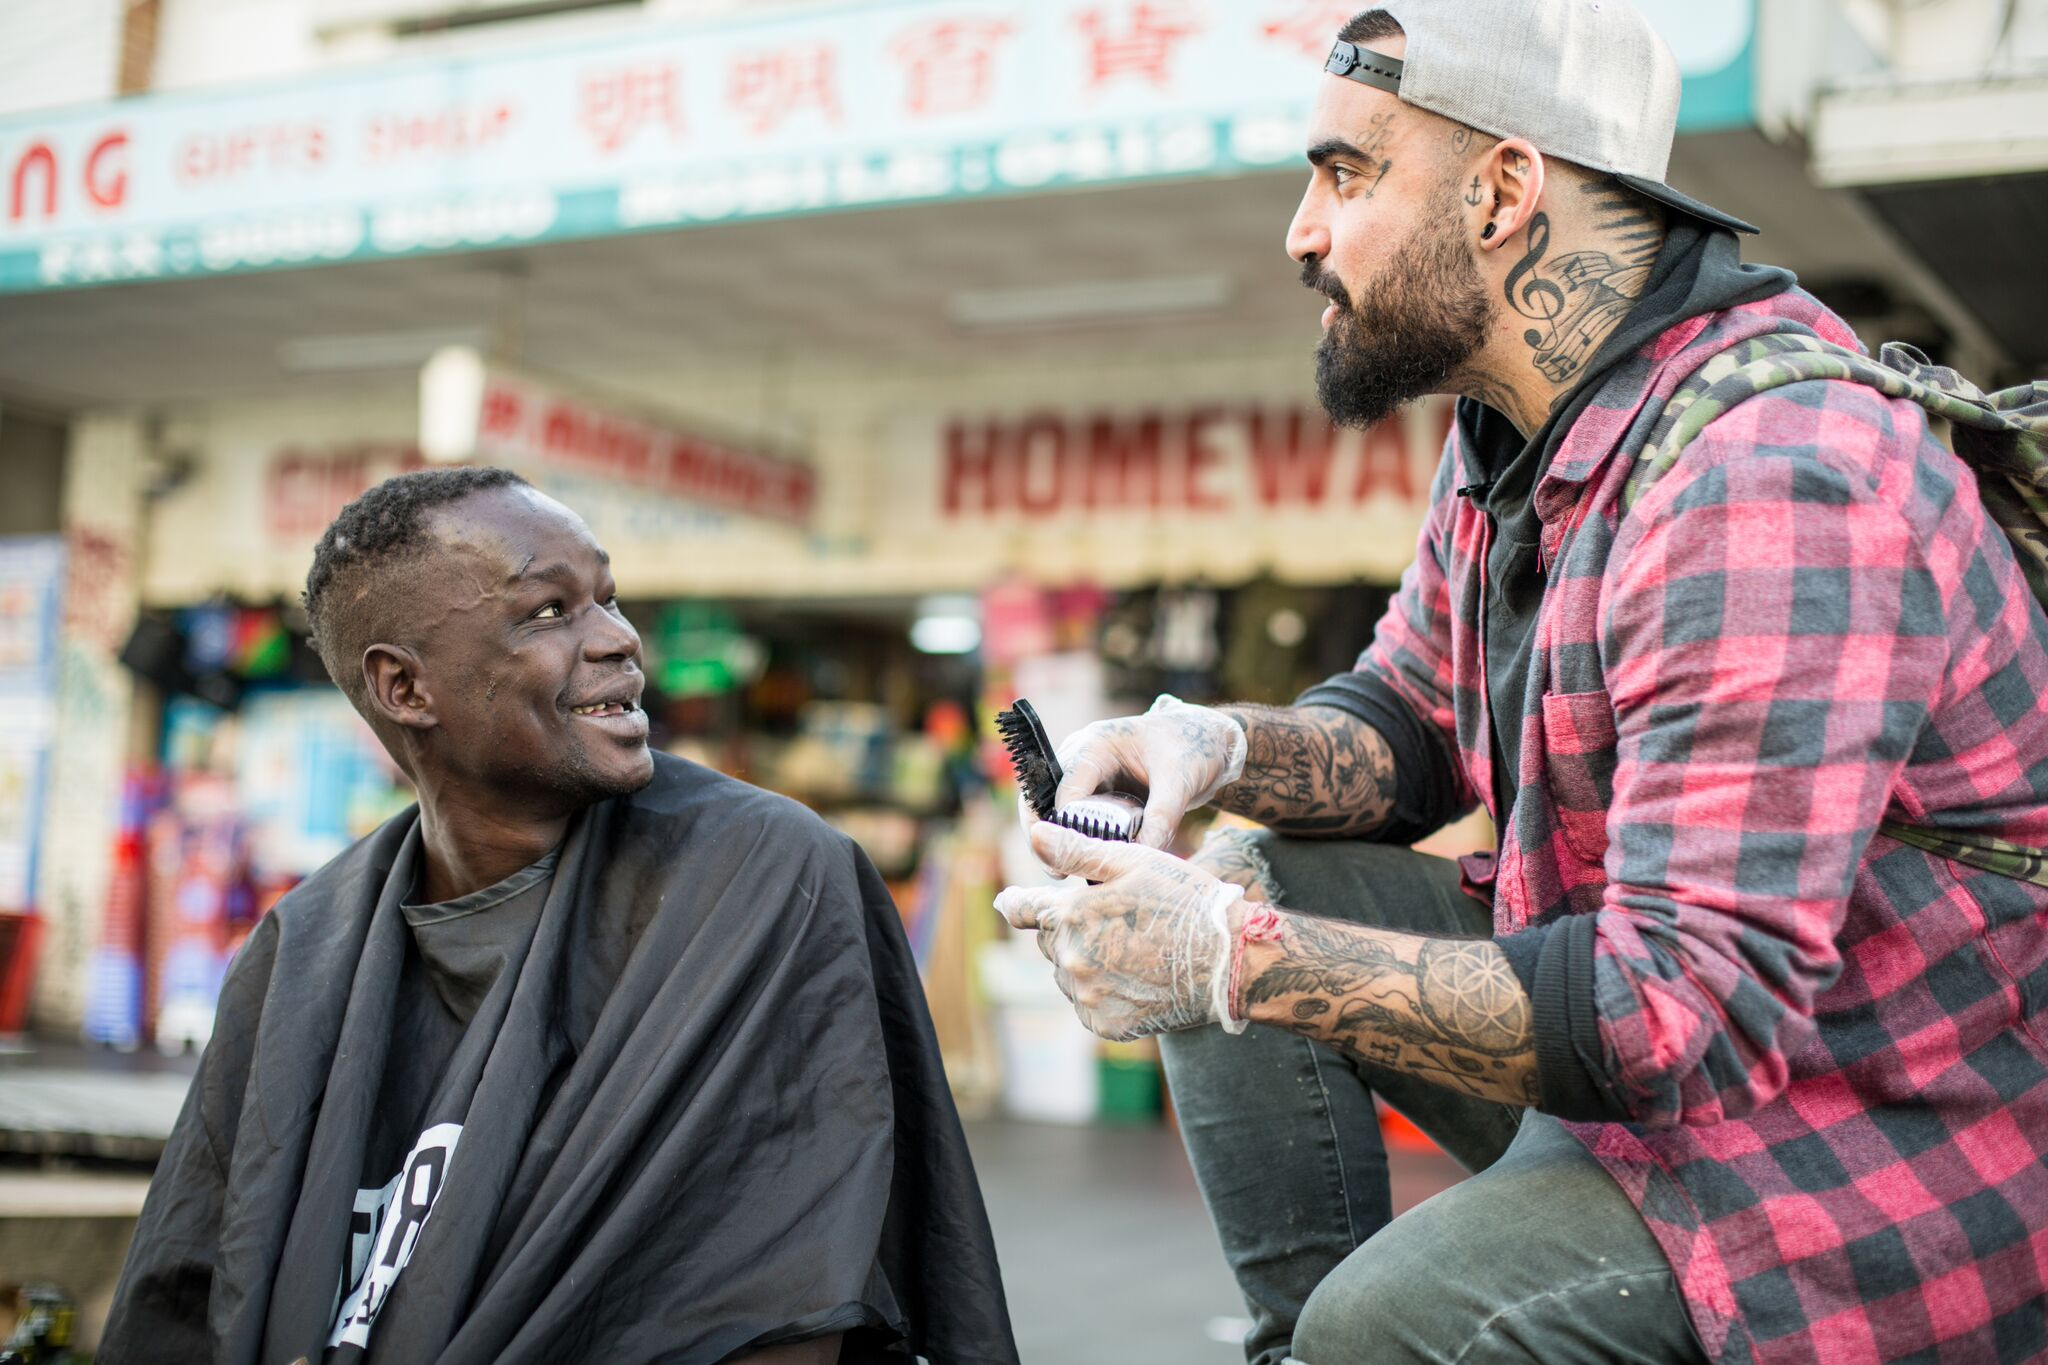 The Streets Barber